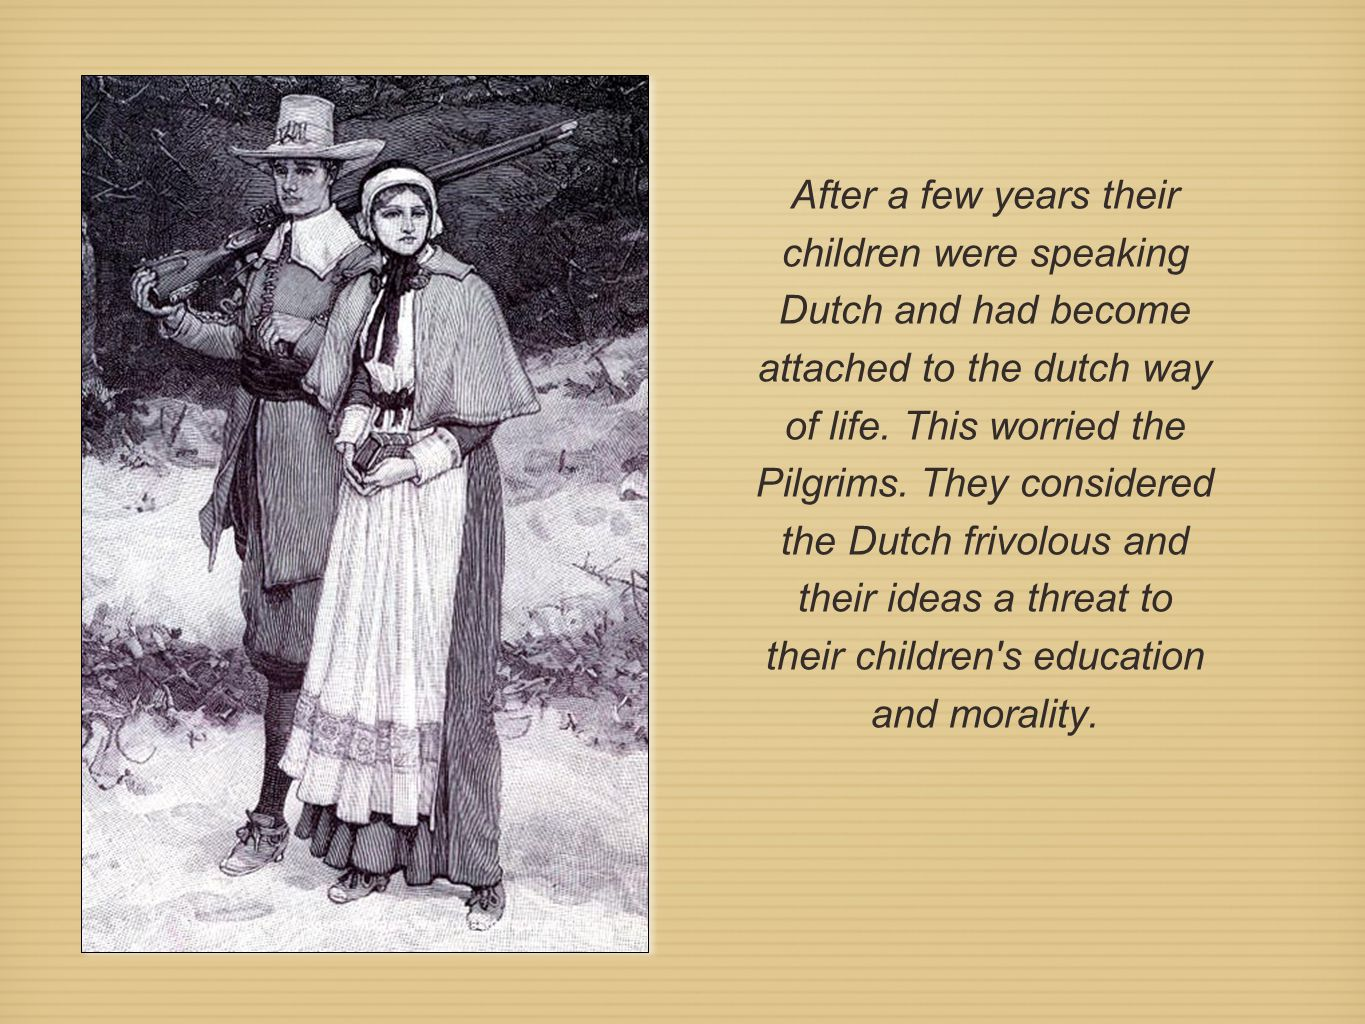 After a few years their children were speaking Dutch and had become attached to the dutch way of life.